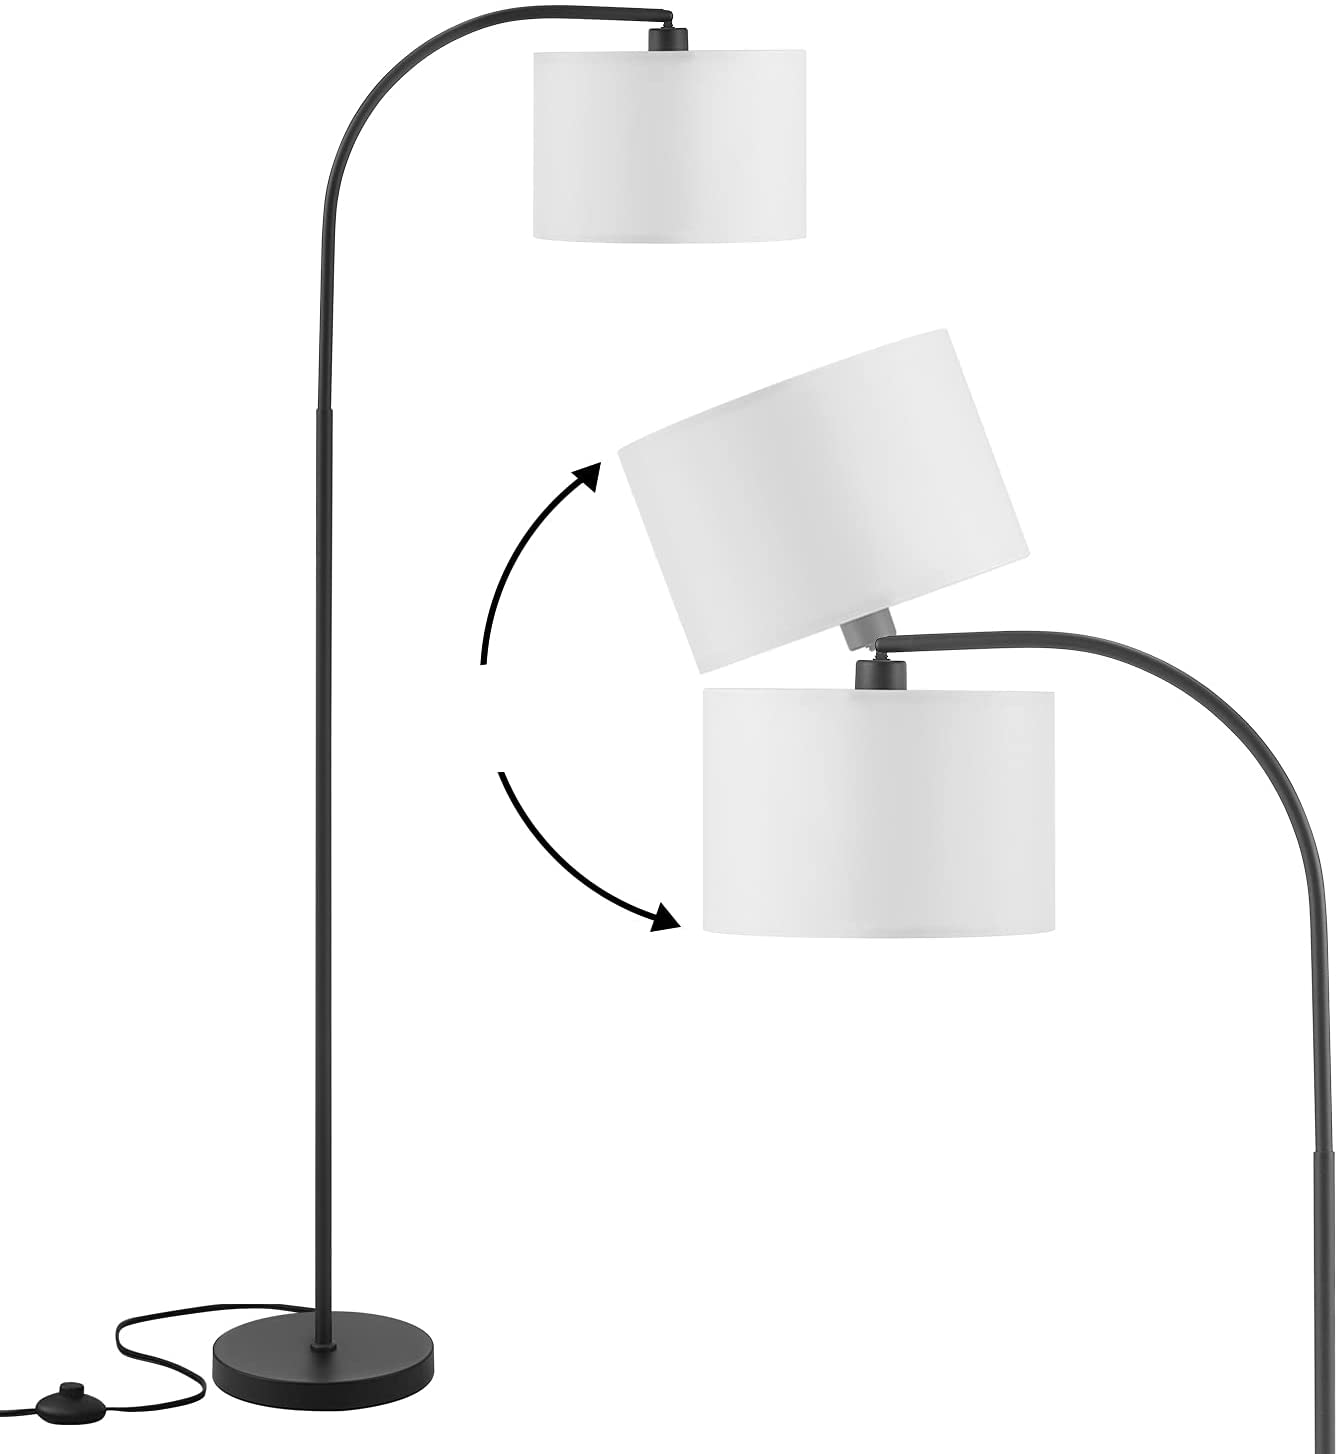 Arc Floor Lamp Adjustable Standing Shade with Mode Direct sale of manufacturer Max 51% OFF Anbomo